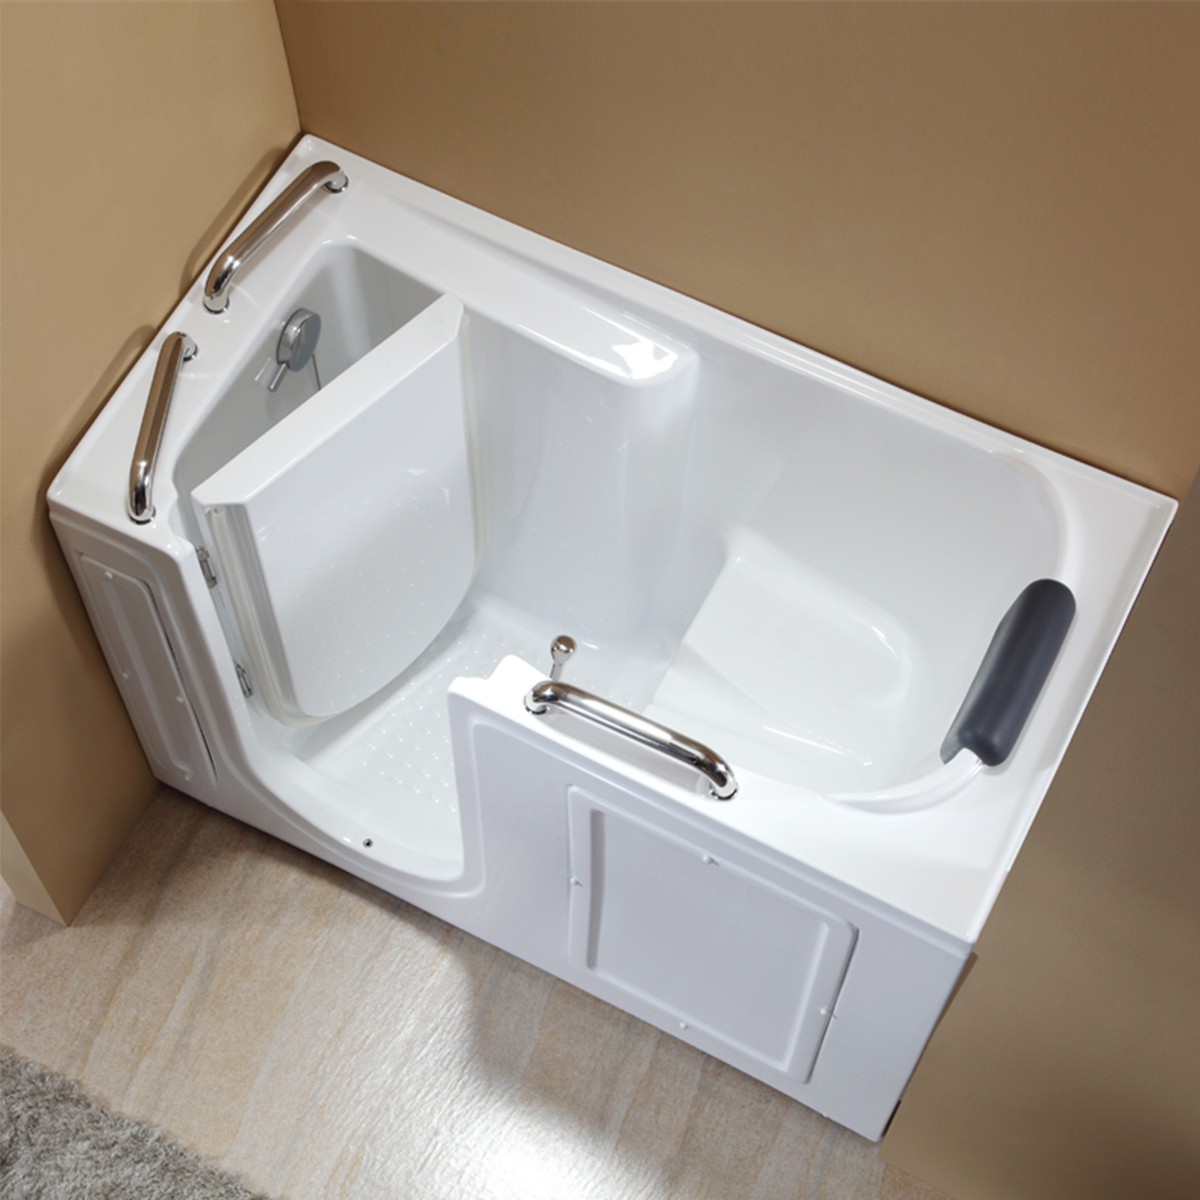 53 x 26 In Walk-in Soaking Bathtub - Acrylic White with Left Drain ...